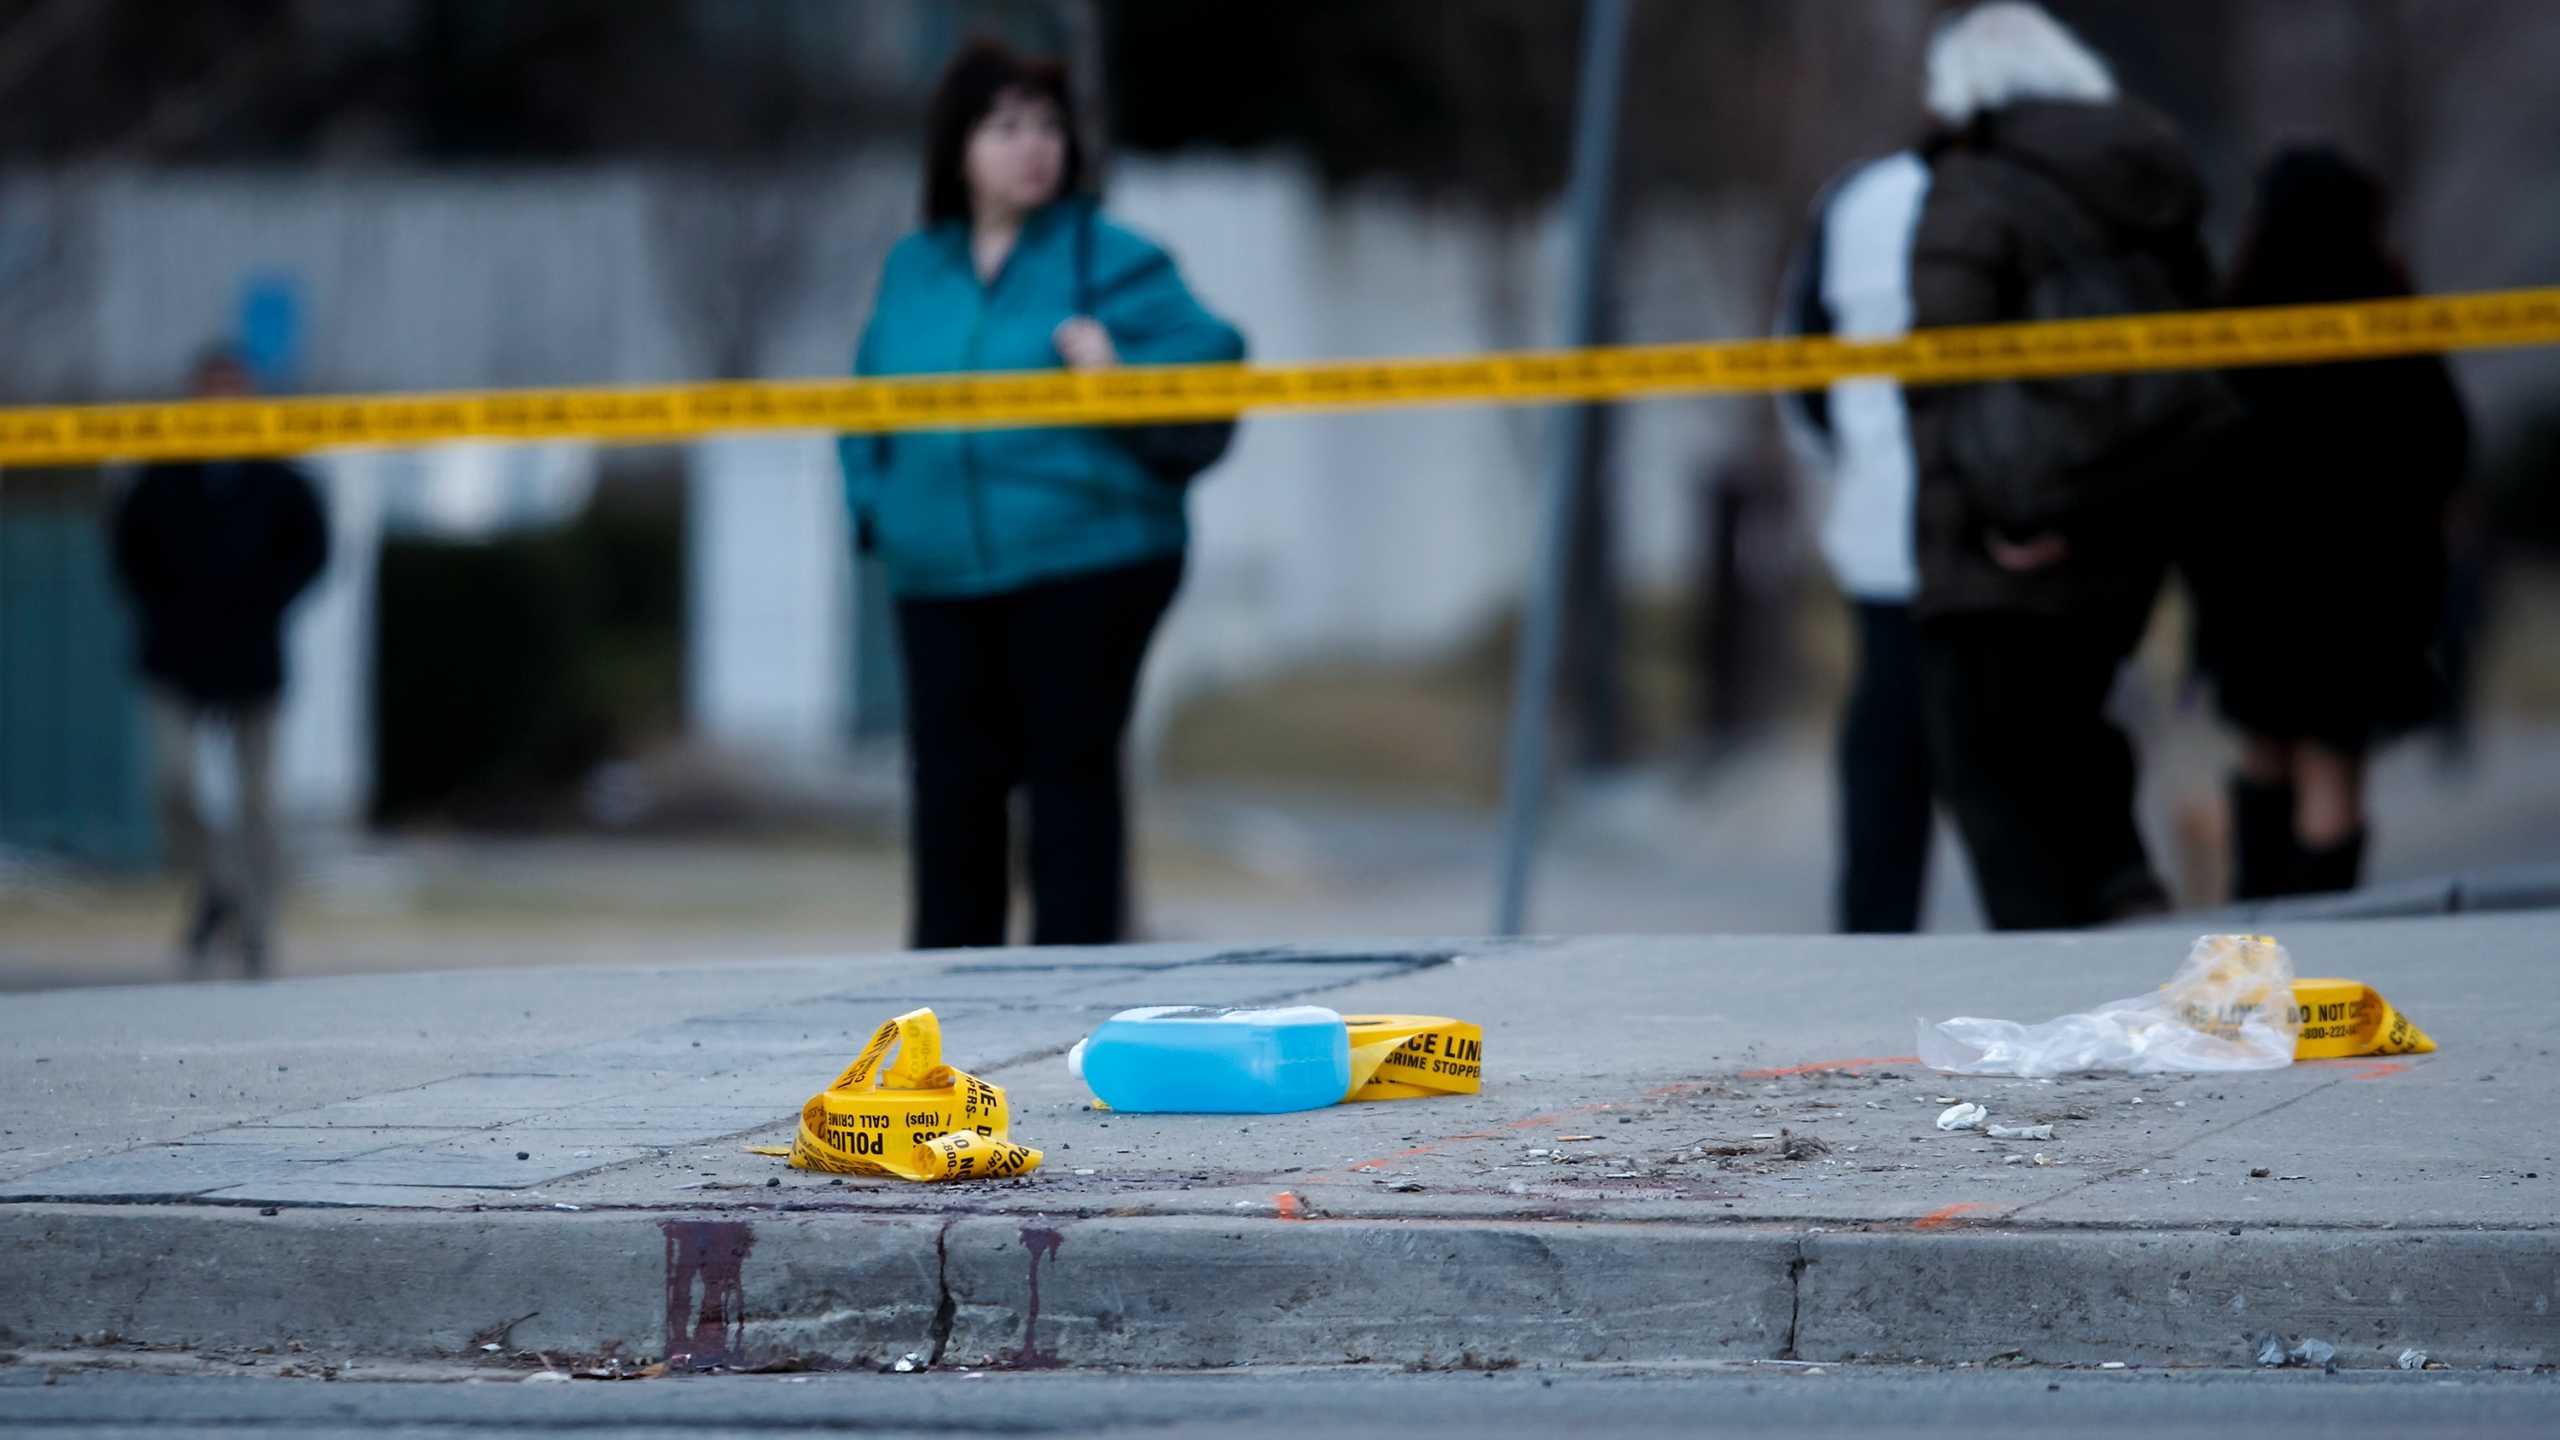 Blood remains at the scene on Yonge St. at Finch Ave., after a van plowed into pedestrians on April 23, 2018 in Toronto, Canada. (Credit: Cole Burston/Getty Images)